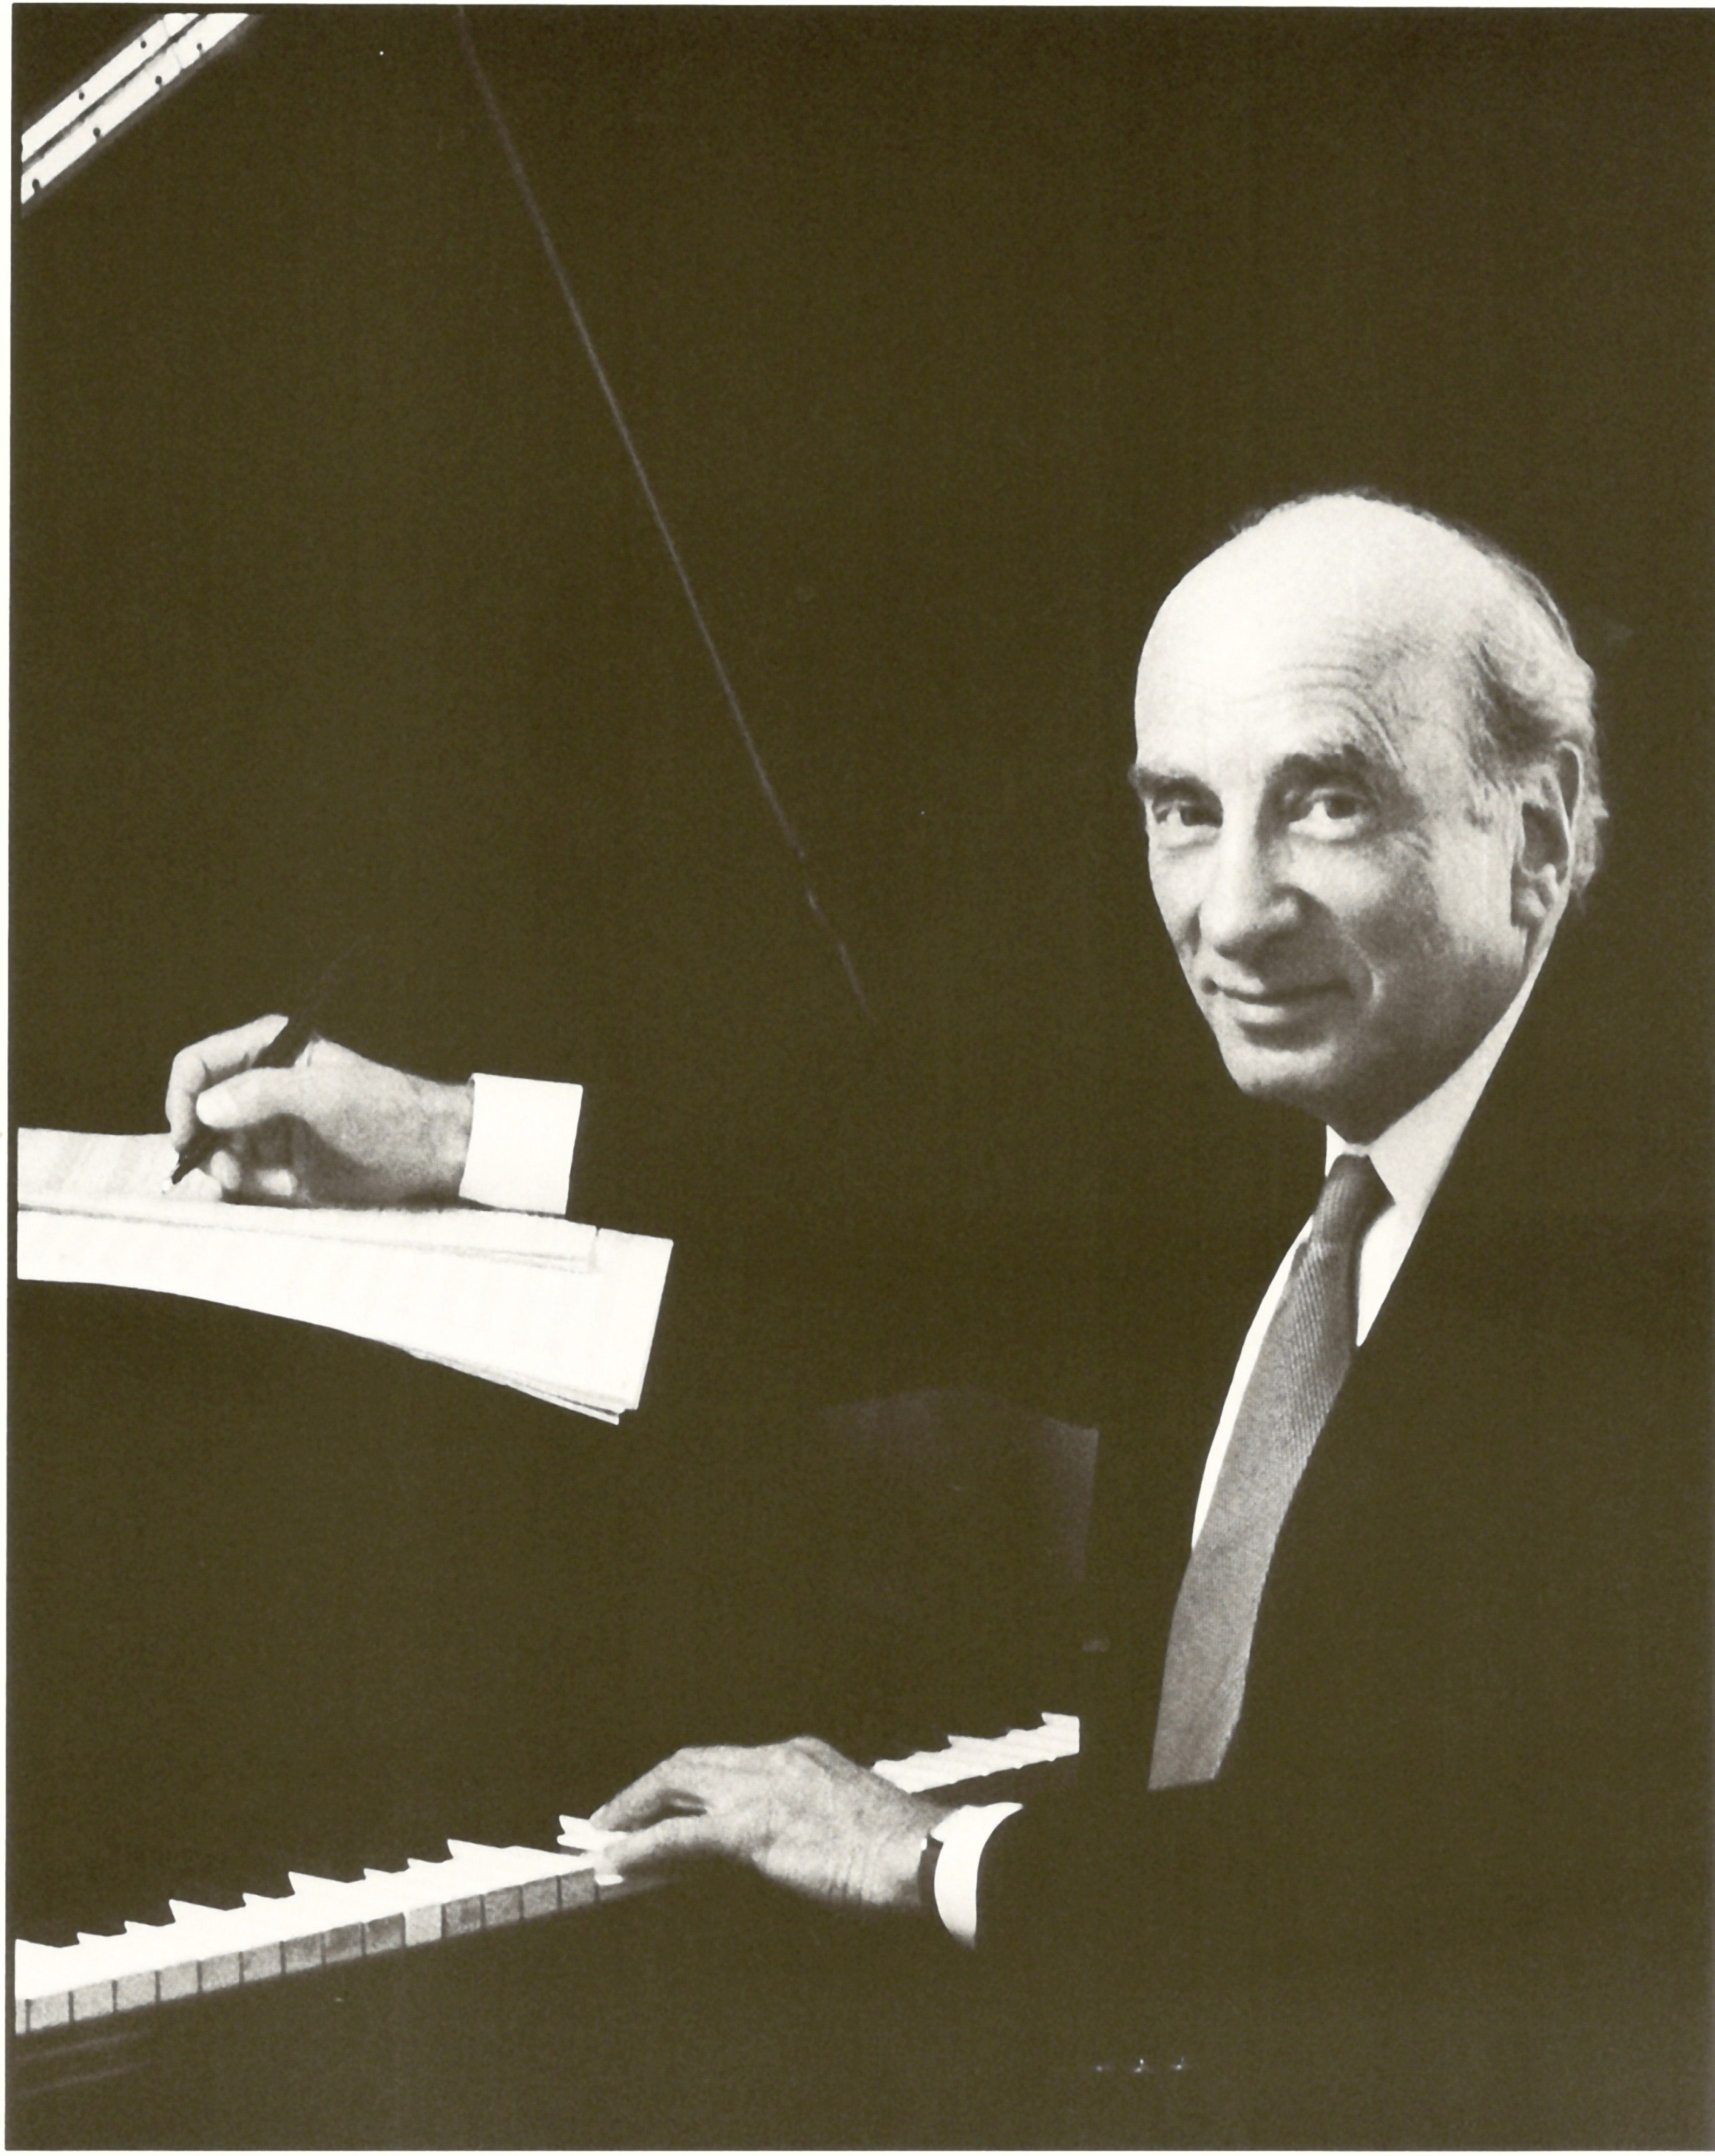 Dick Hyman composing at the piano